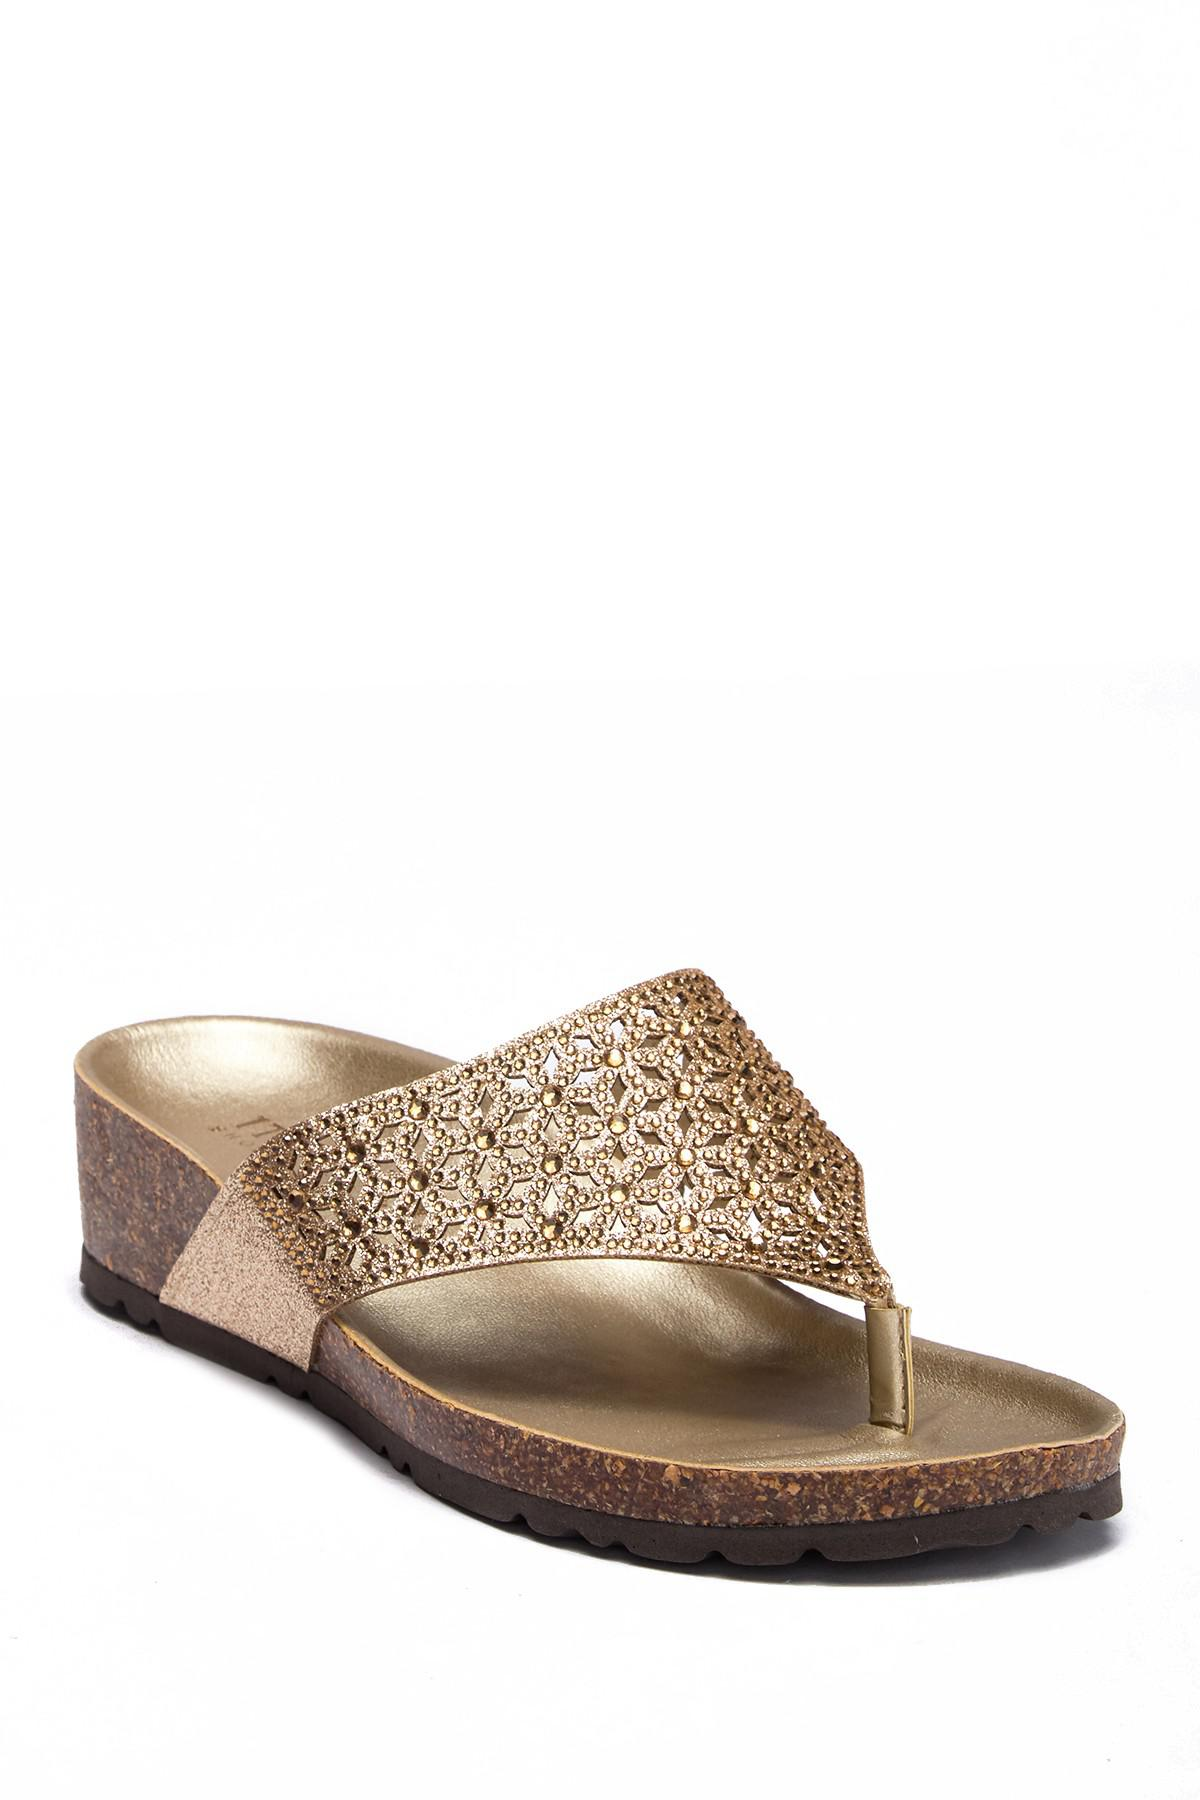 66507948a Italian Shoemakers Eloise Wedge Sandal - Lyst